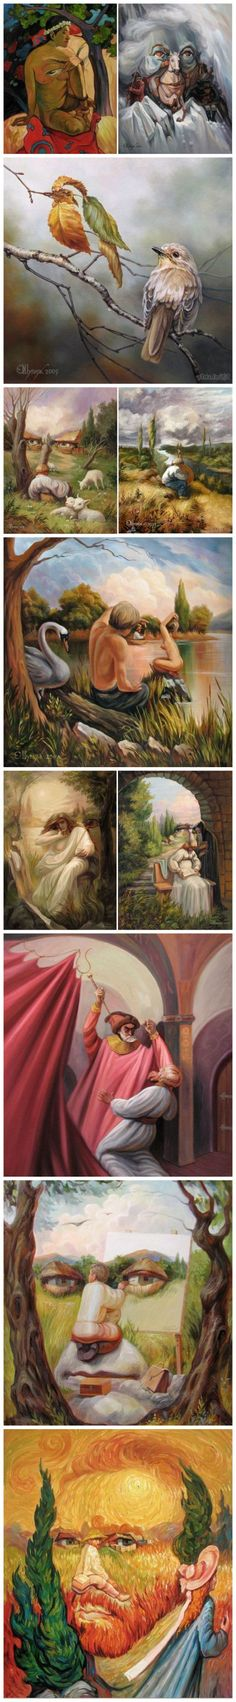 The art of Oleg Shuplyak